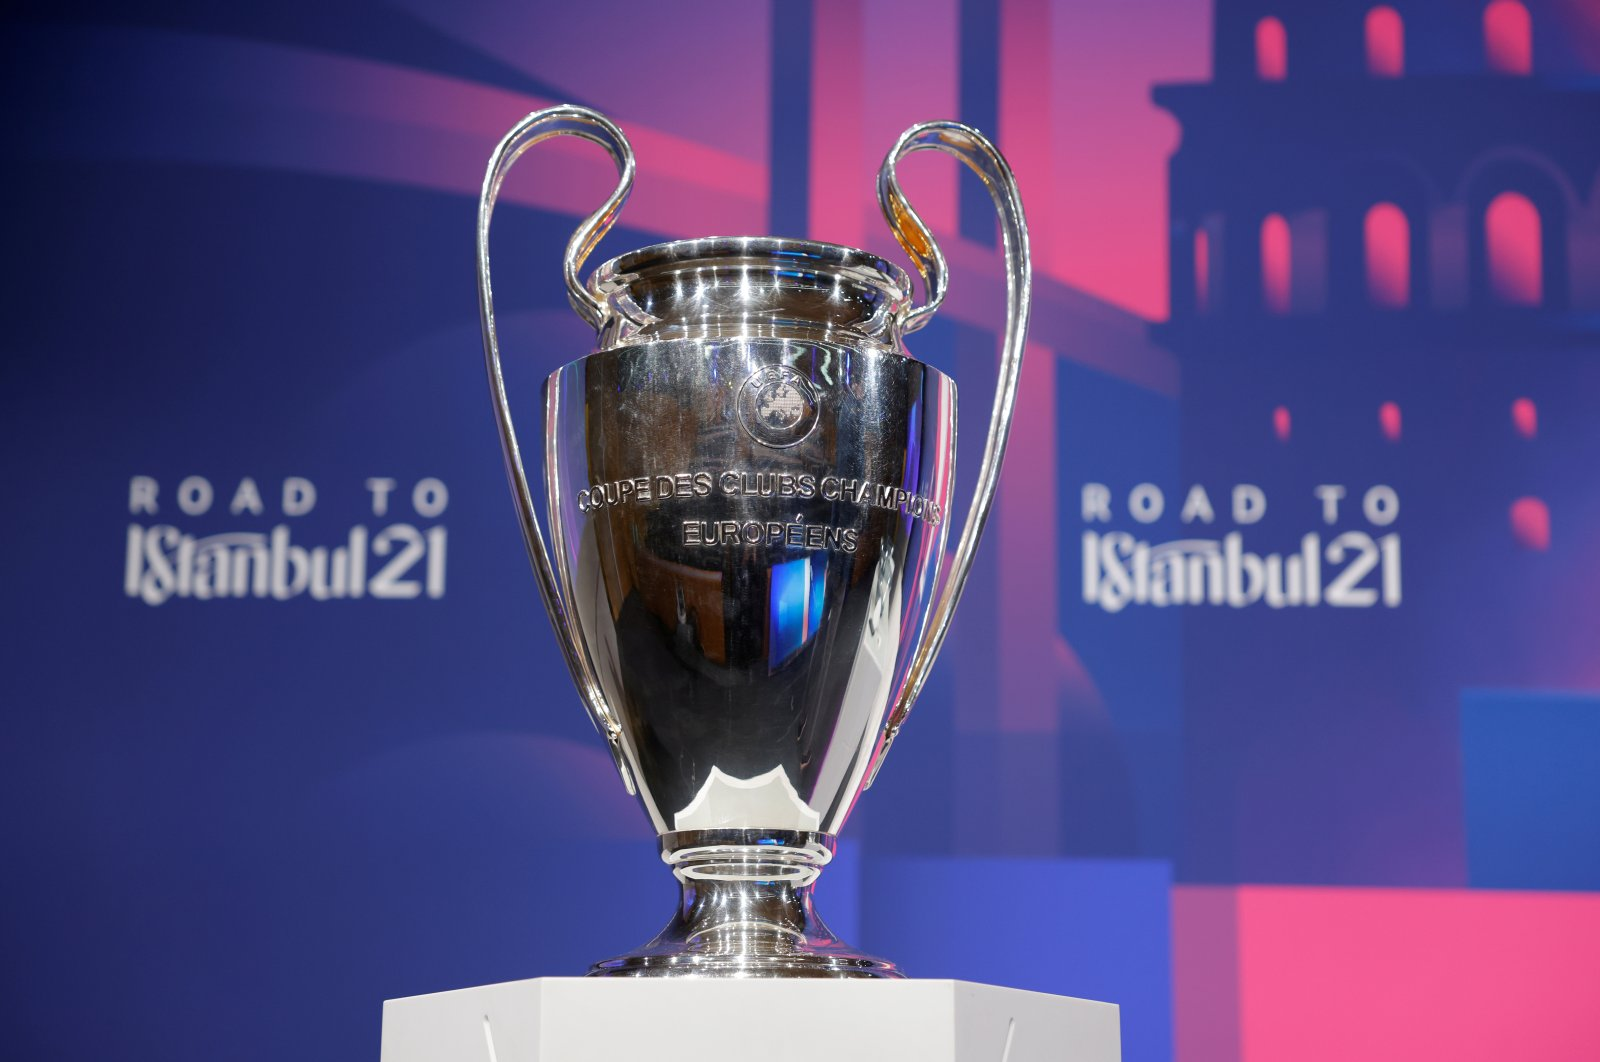 The Champions League trophy on display at UEFA headquarters in Nyon, Switzerland, March 19, 2021. (Reuters Photo)